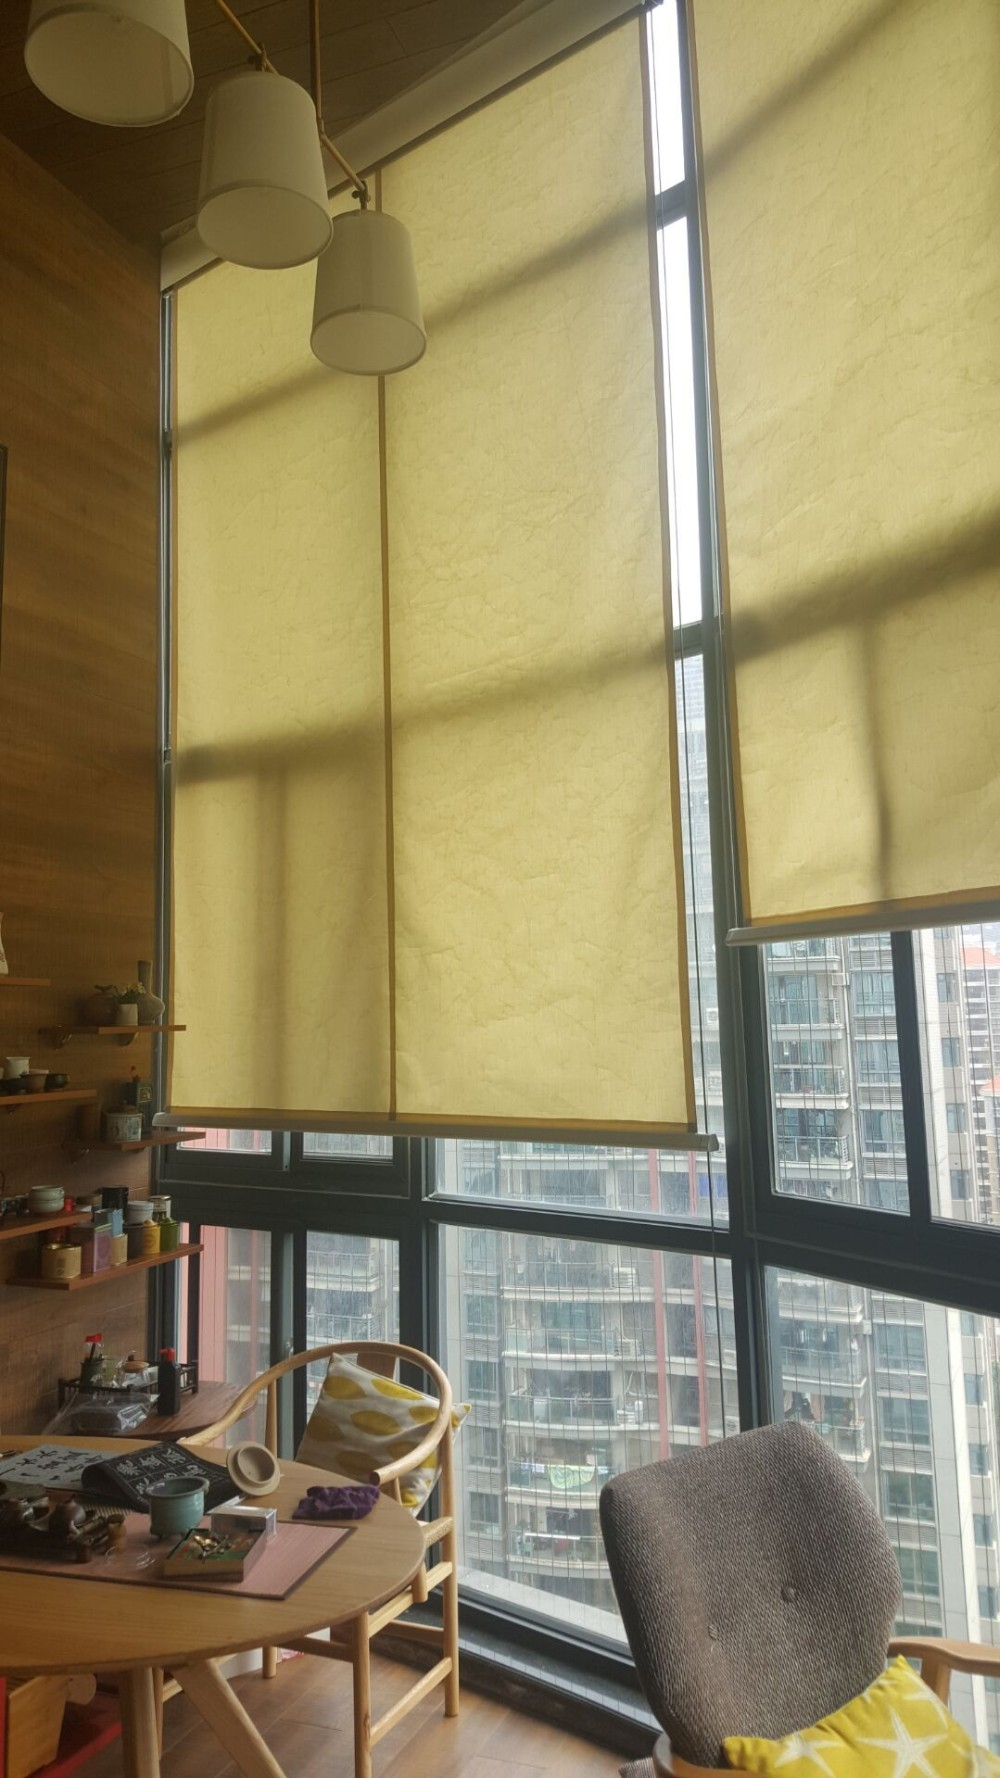 Vertical roller blinds curtain for indoor and outdoor window